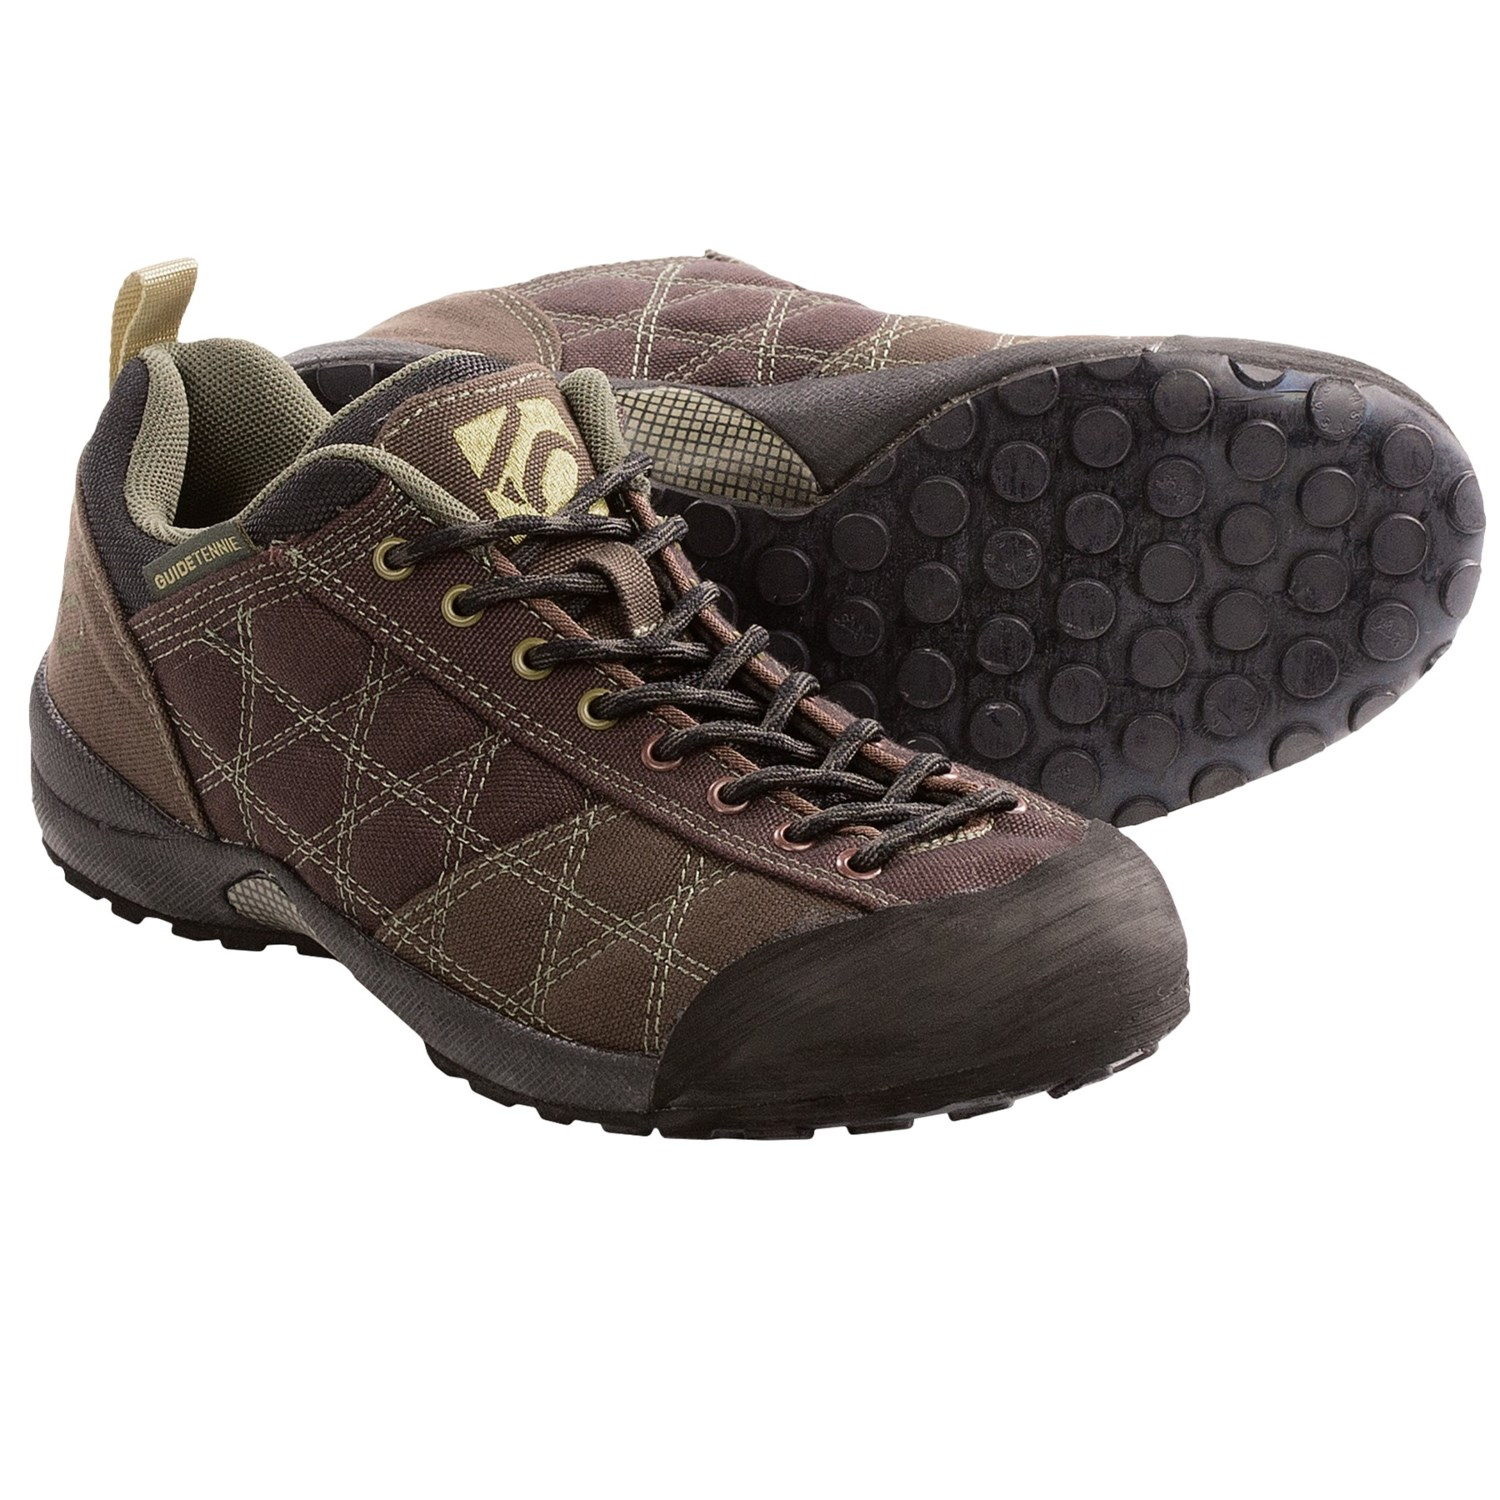 Five Ten 2012 Guide Tennie Trail Shoes (For Women) in Sable